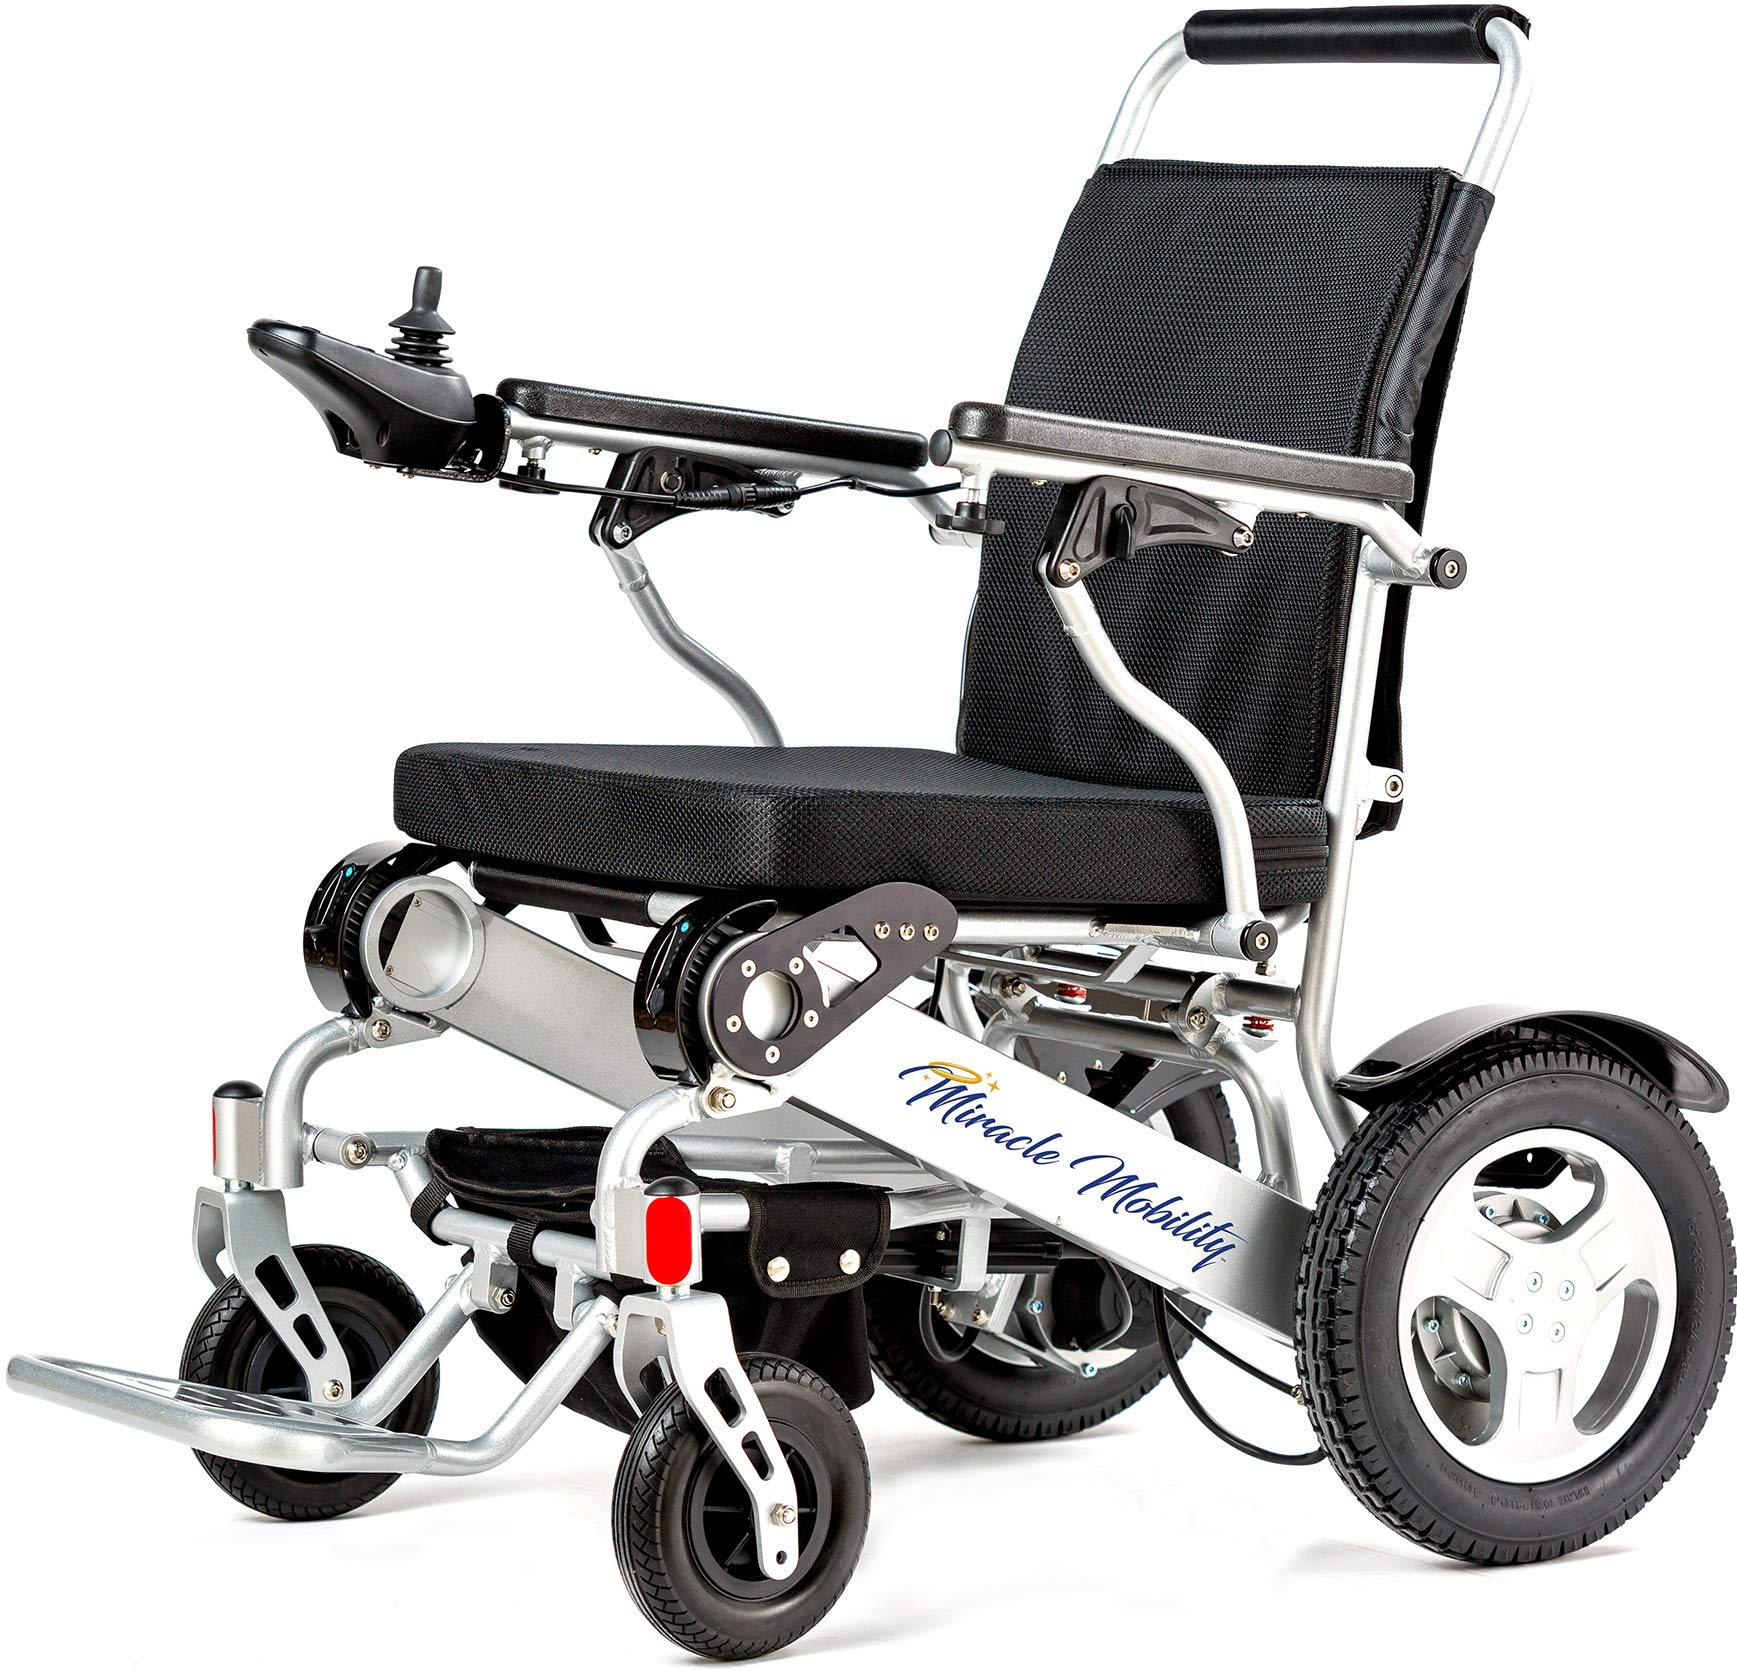 Miracle Mobility Freedom Series Gold XL Electric Folding Mobility Wheelchair with Two 250W Motors and Two 24V, 144Wh Lithium Ion Batteries, Silver by Miracle Mobility